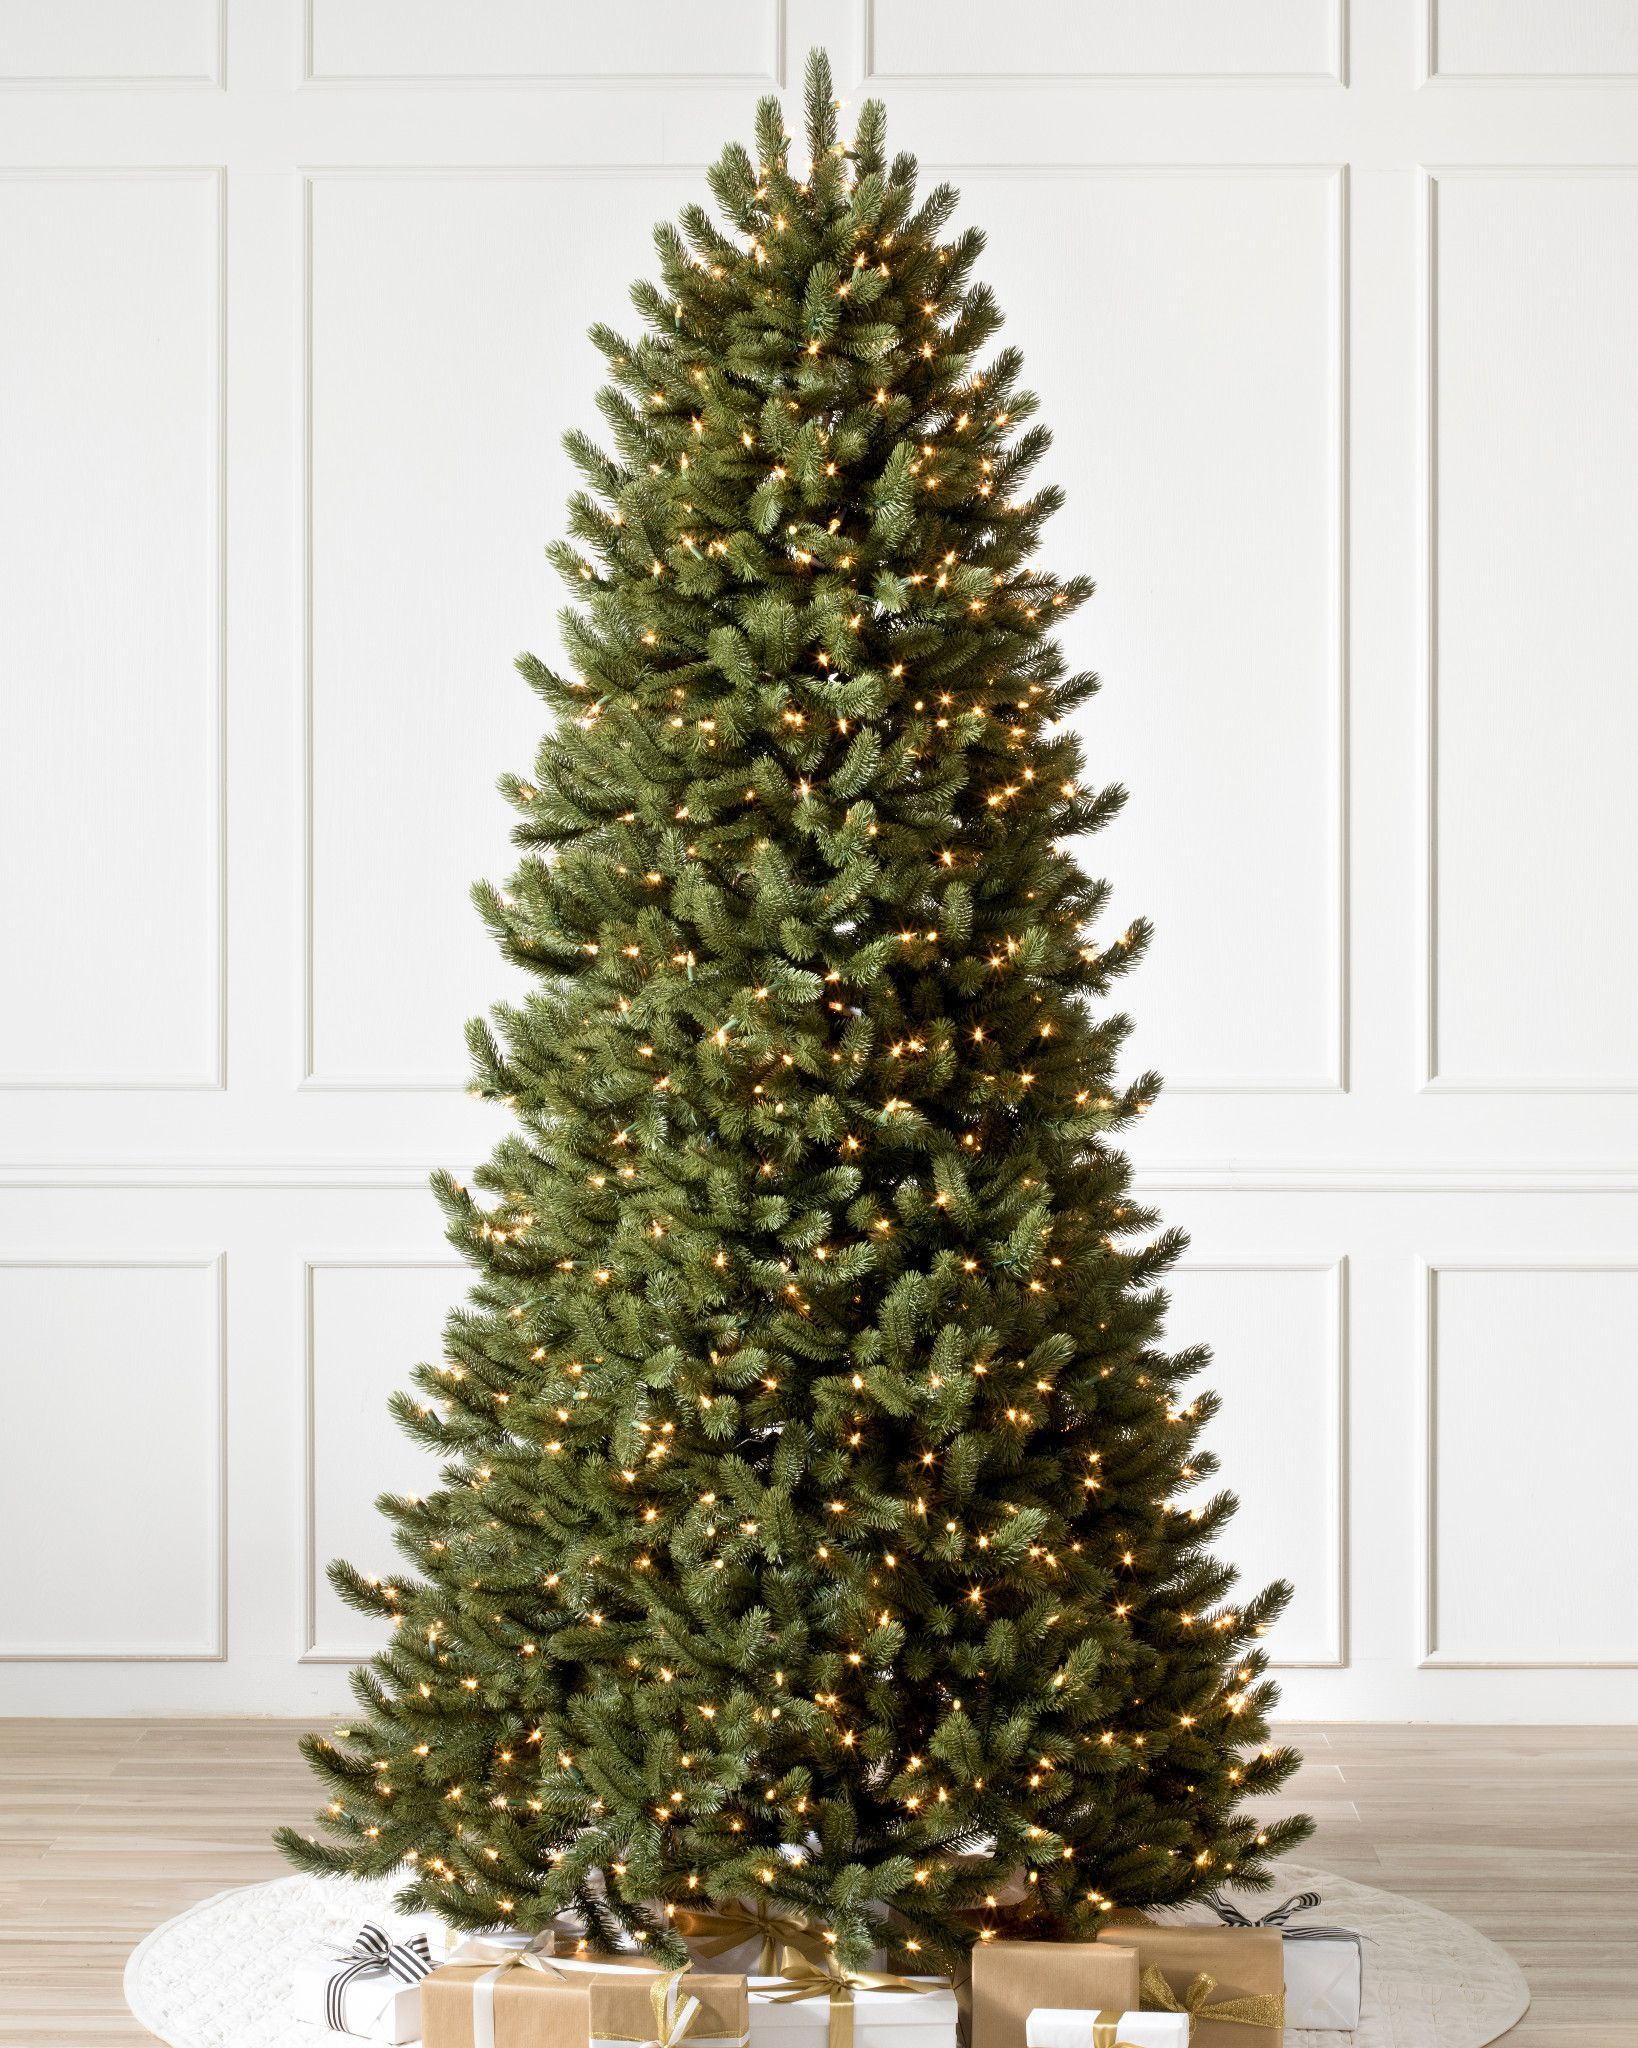 Vermont White Spruce Narrow Artificial Christmas Trees Realistic Artificial Christmas Trees Christmas Tree Sale Slim Artificial Christmas Trees